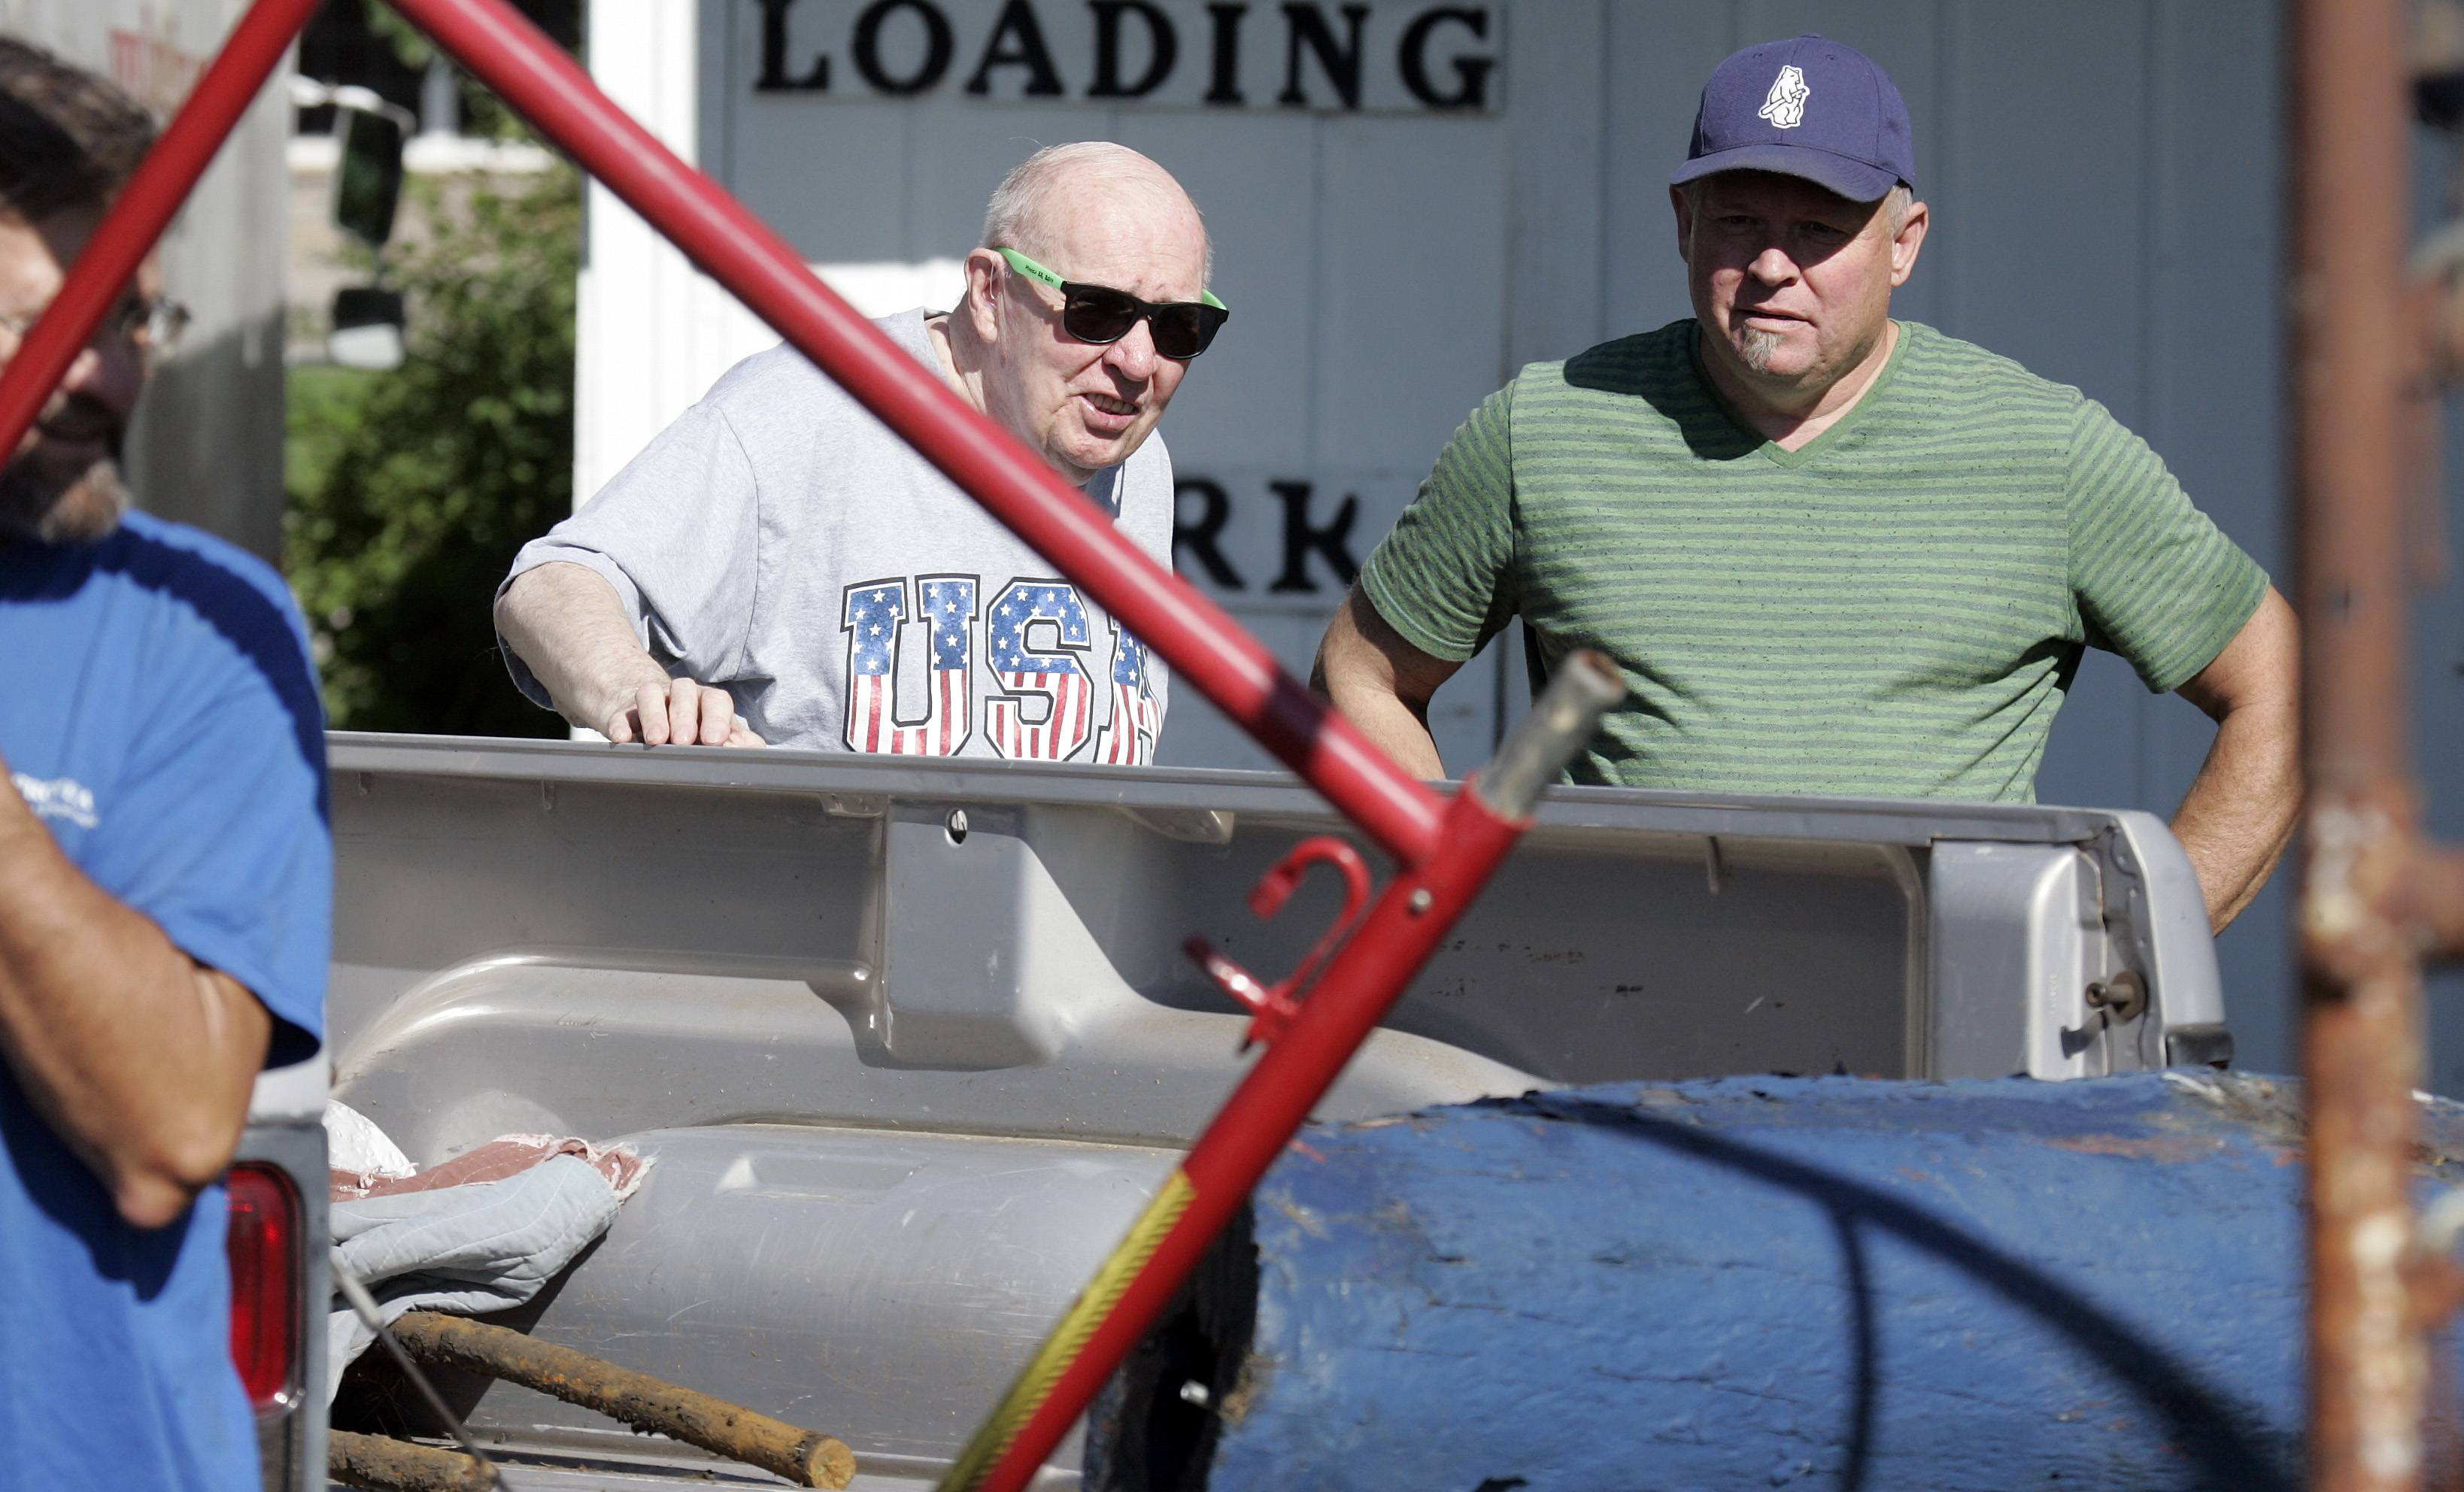 Previous owner Richard Pakan, of Custom Furniture left, and Clint Carey of Pingree Grove watch as the 25-foot-tall wood sculpture of Revolutionary War soldier that's been on display since 1976 on the front lawn of Custom Furniture in St. Charles is dismantled Wednesday.